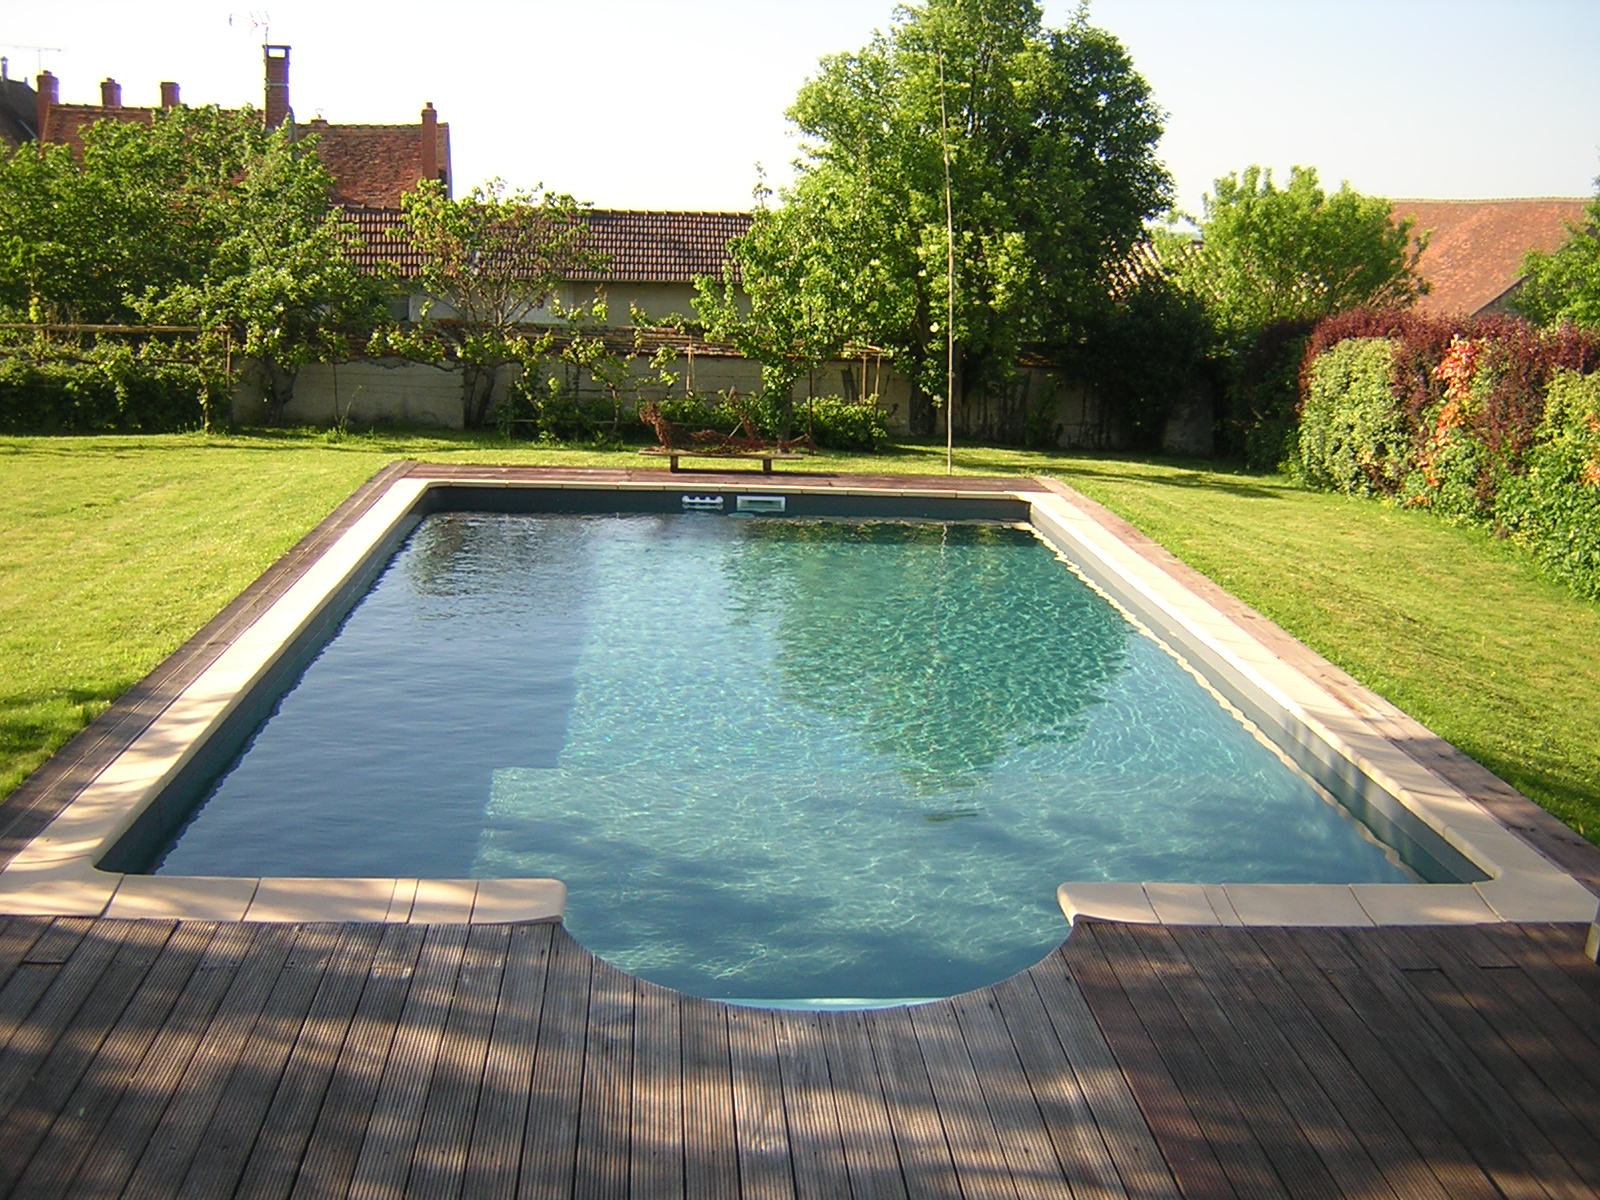 Renovation piscine for Liner piscine 4m60 sur 1m20